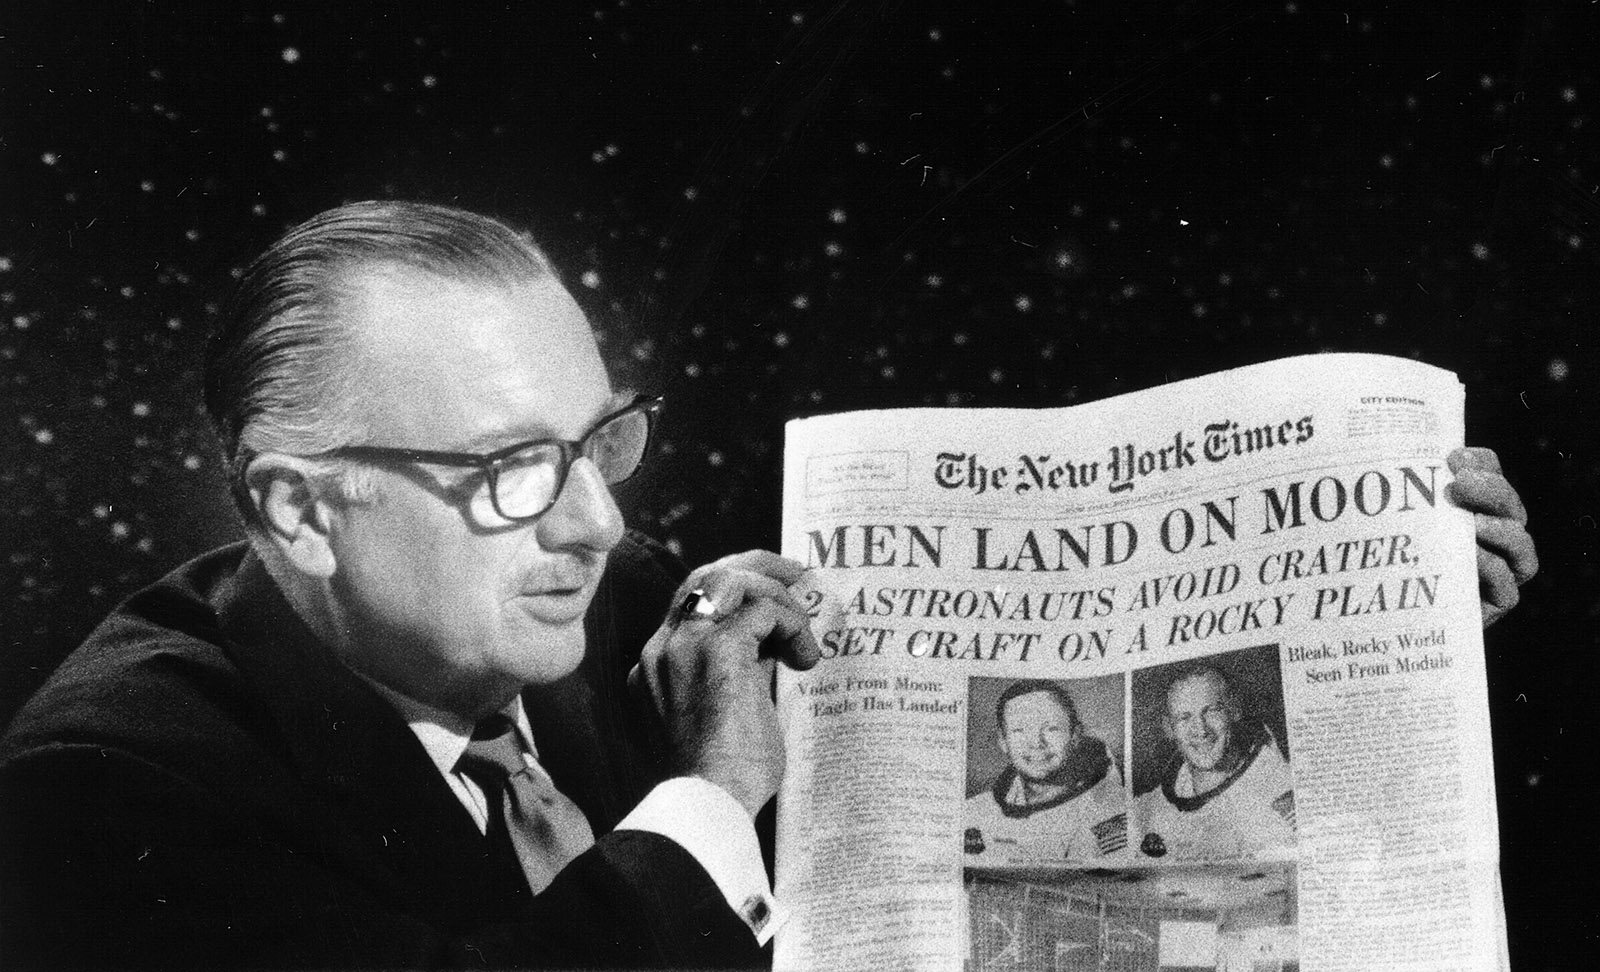 News anchor Walter Cronkite holds up an early edition of next day's The New York Times during CBS's Apollo 11 telecast, July 20, 1969